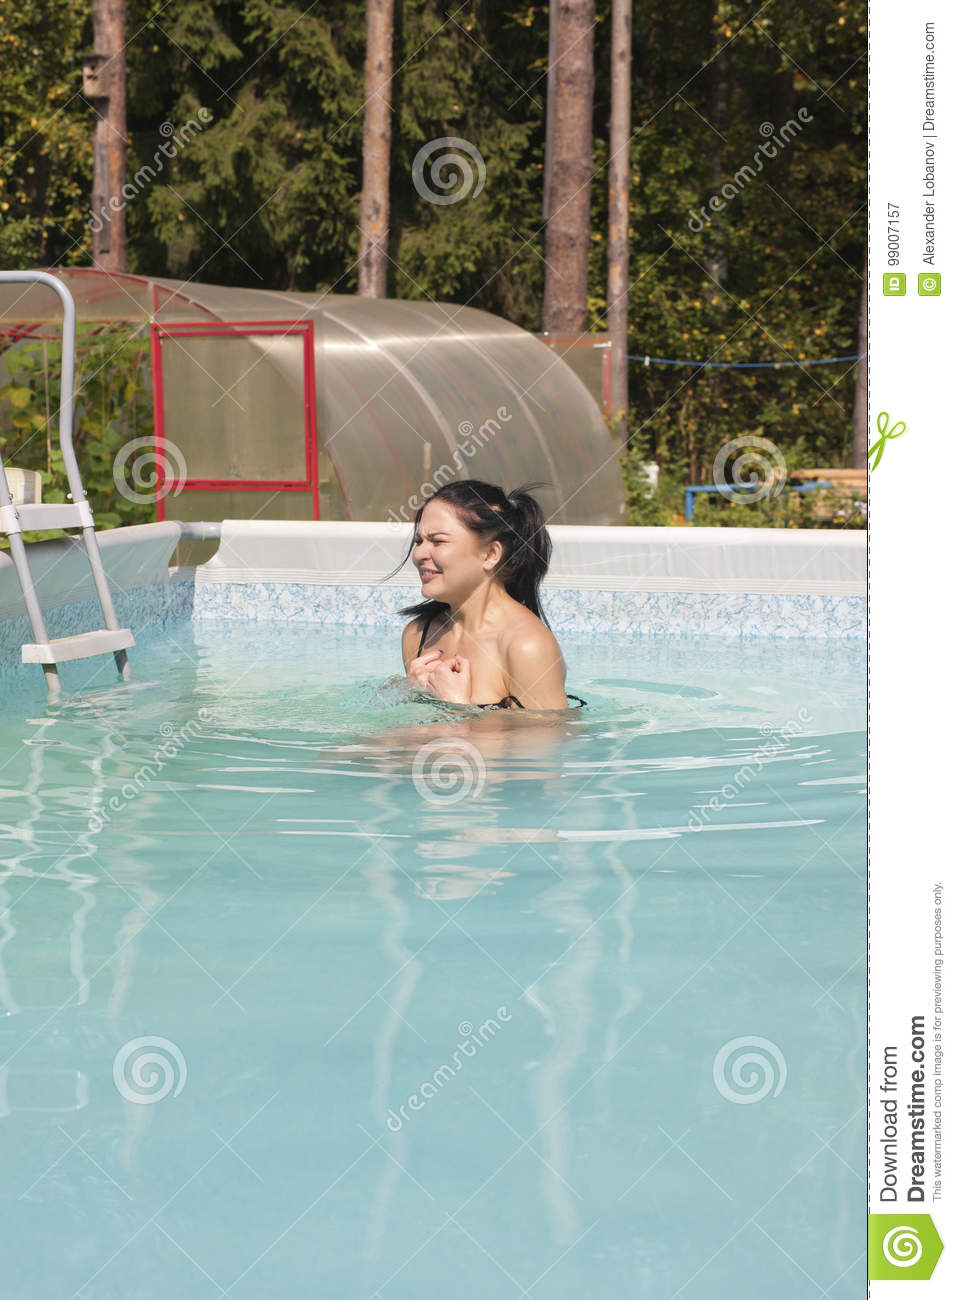 Naked girls in public pool